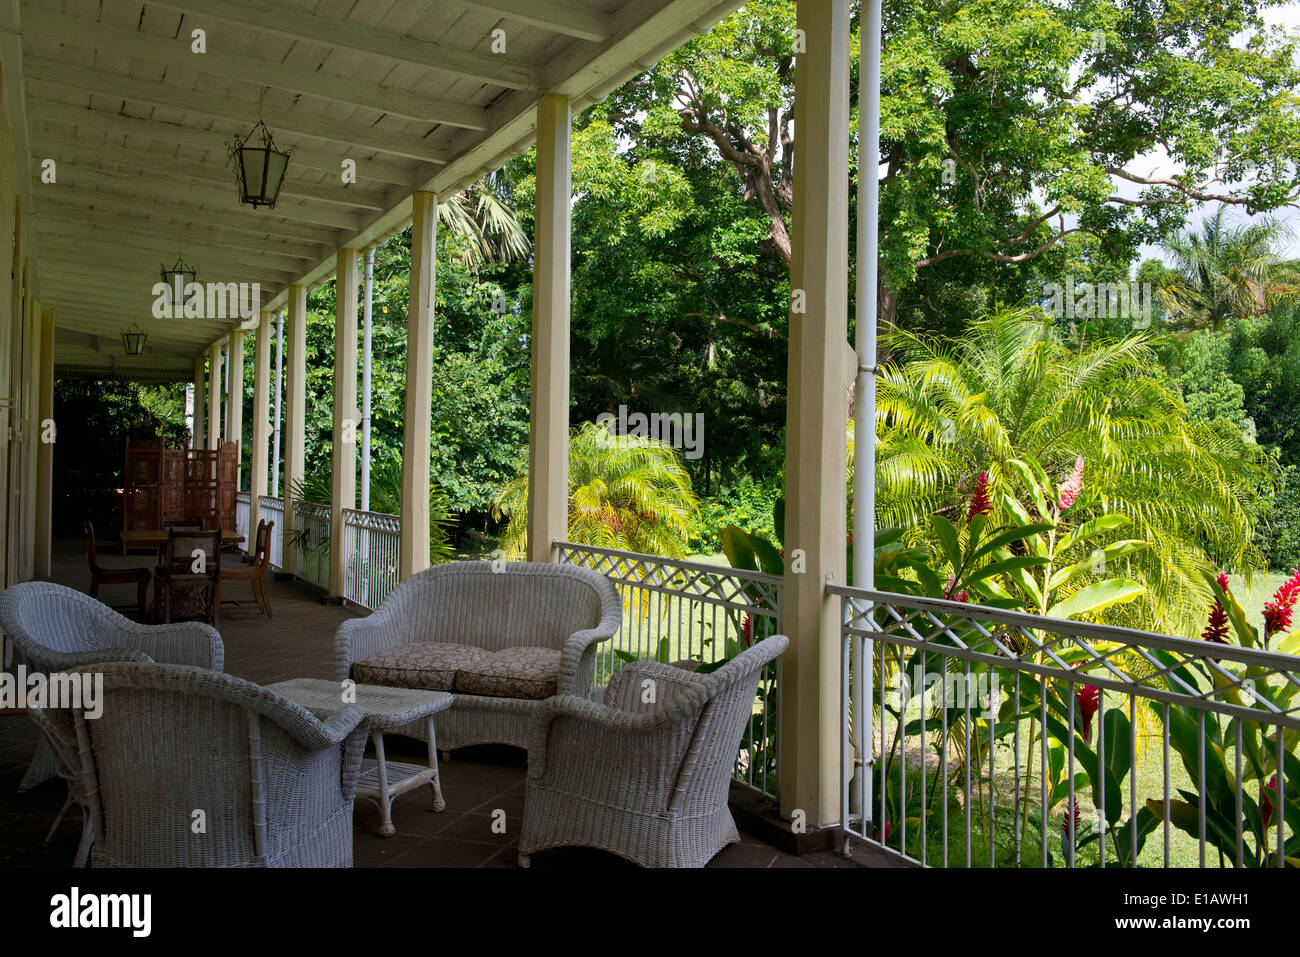 Wicker Furniture On The Porch Of Eureka House, A Restored Colonial House In  Moka, Mauritius, The Indian Ocean